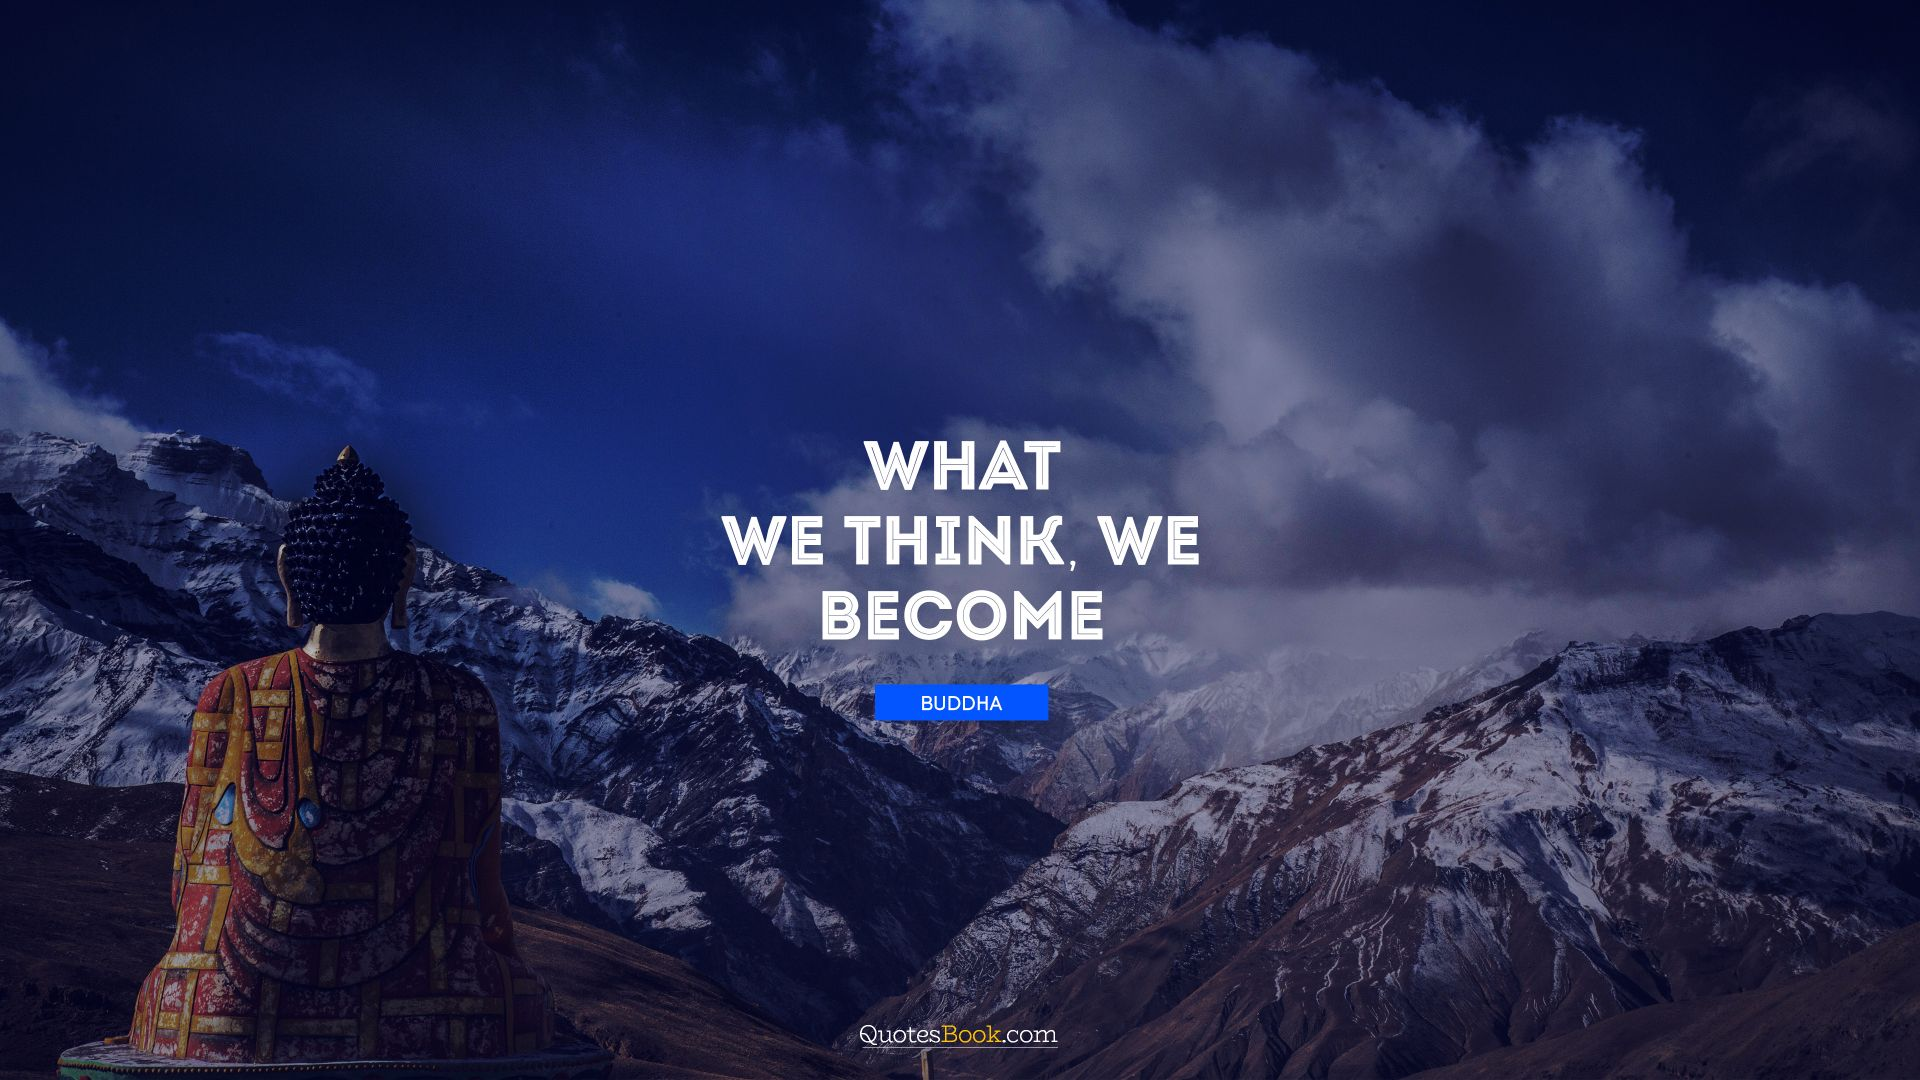 What we think, we become. - Quote by Buddha